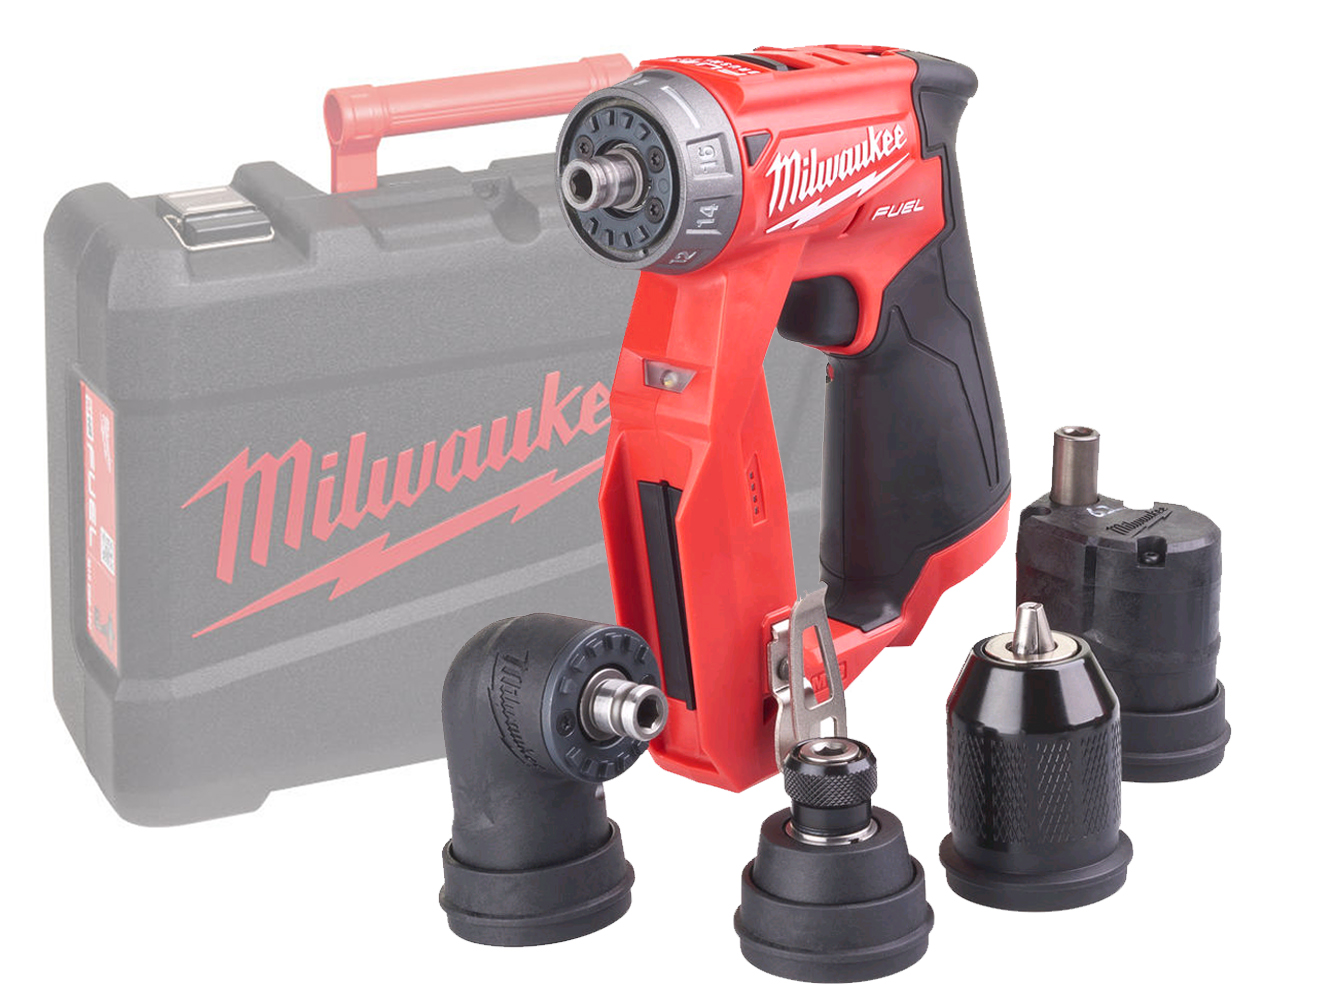 MILWAUKEE 12V FUEL BRUSHLESS 4in1 MULTI DRILL - M12FDDXKIT - BODY ONLY